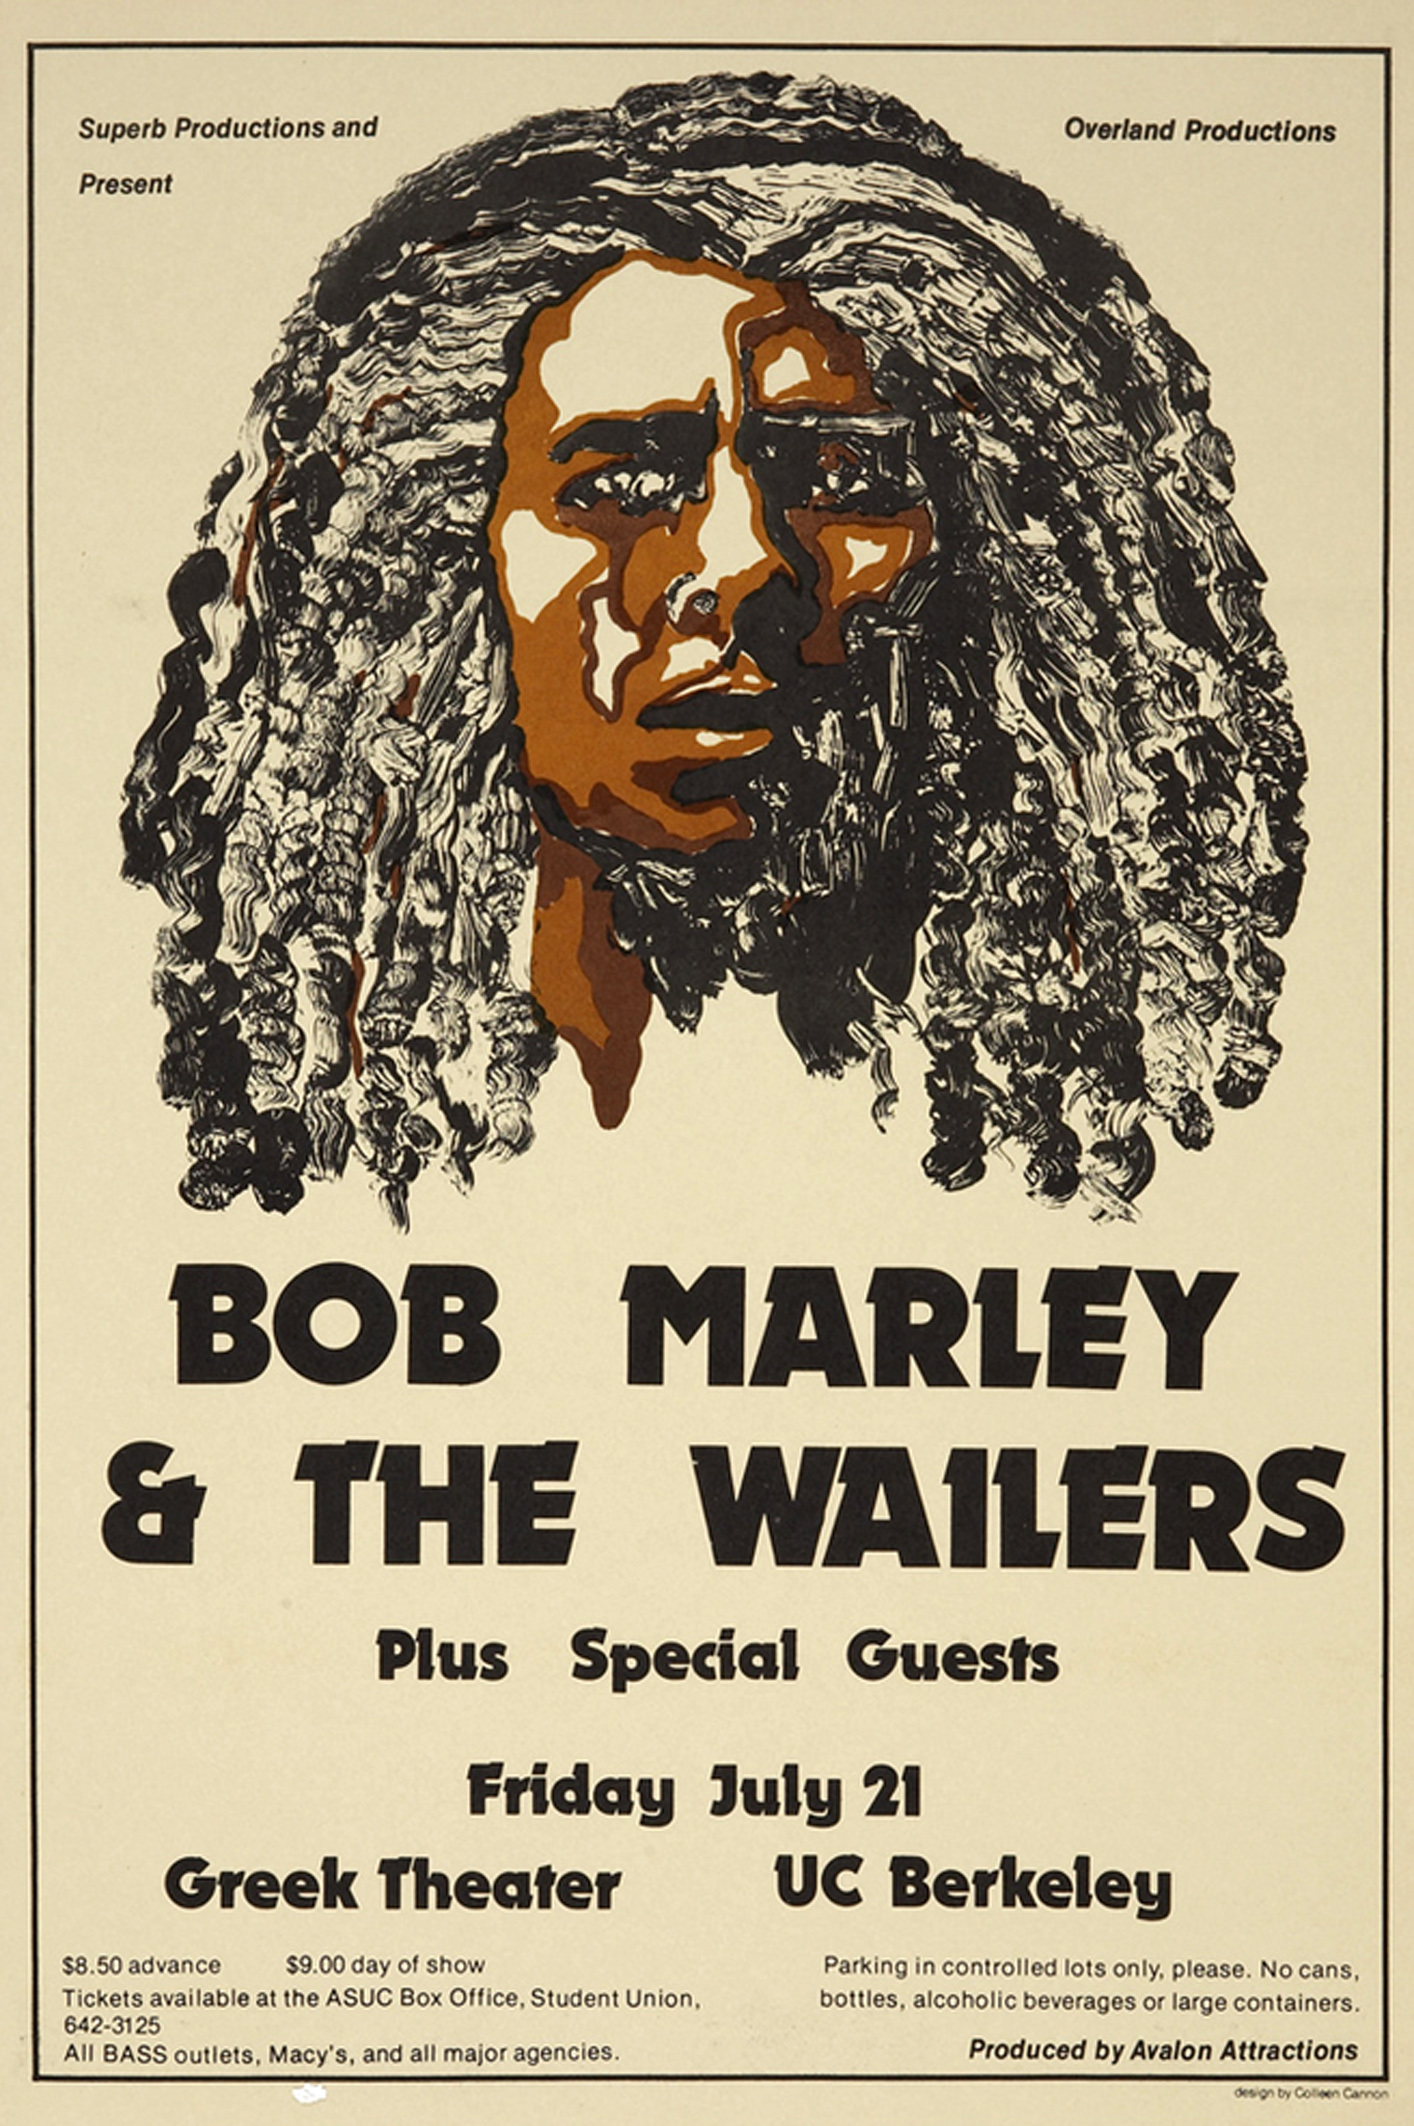 Bob Marley & the Wailers Greek Theater UC Berkeley Concert 1978